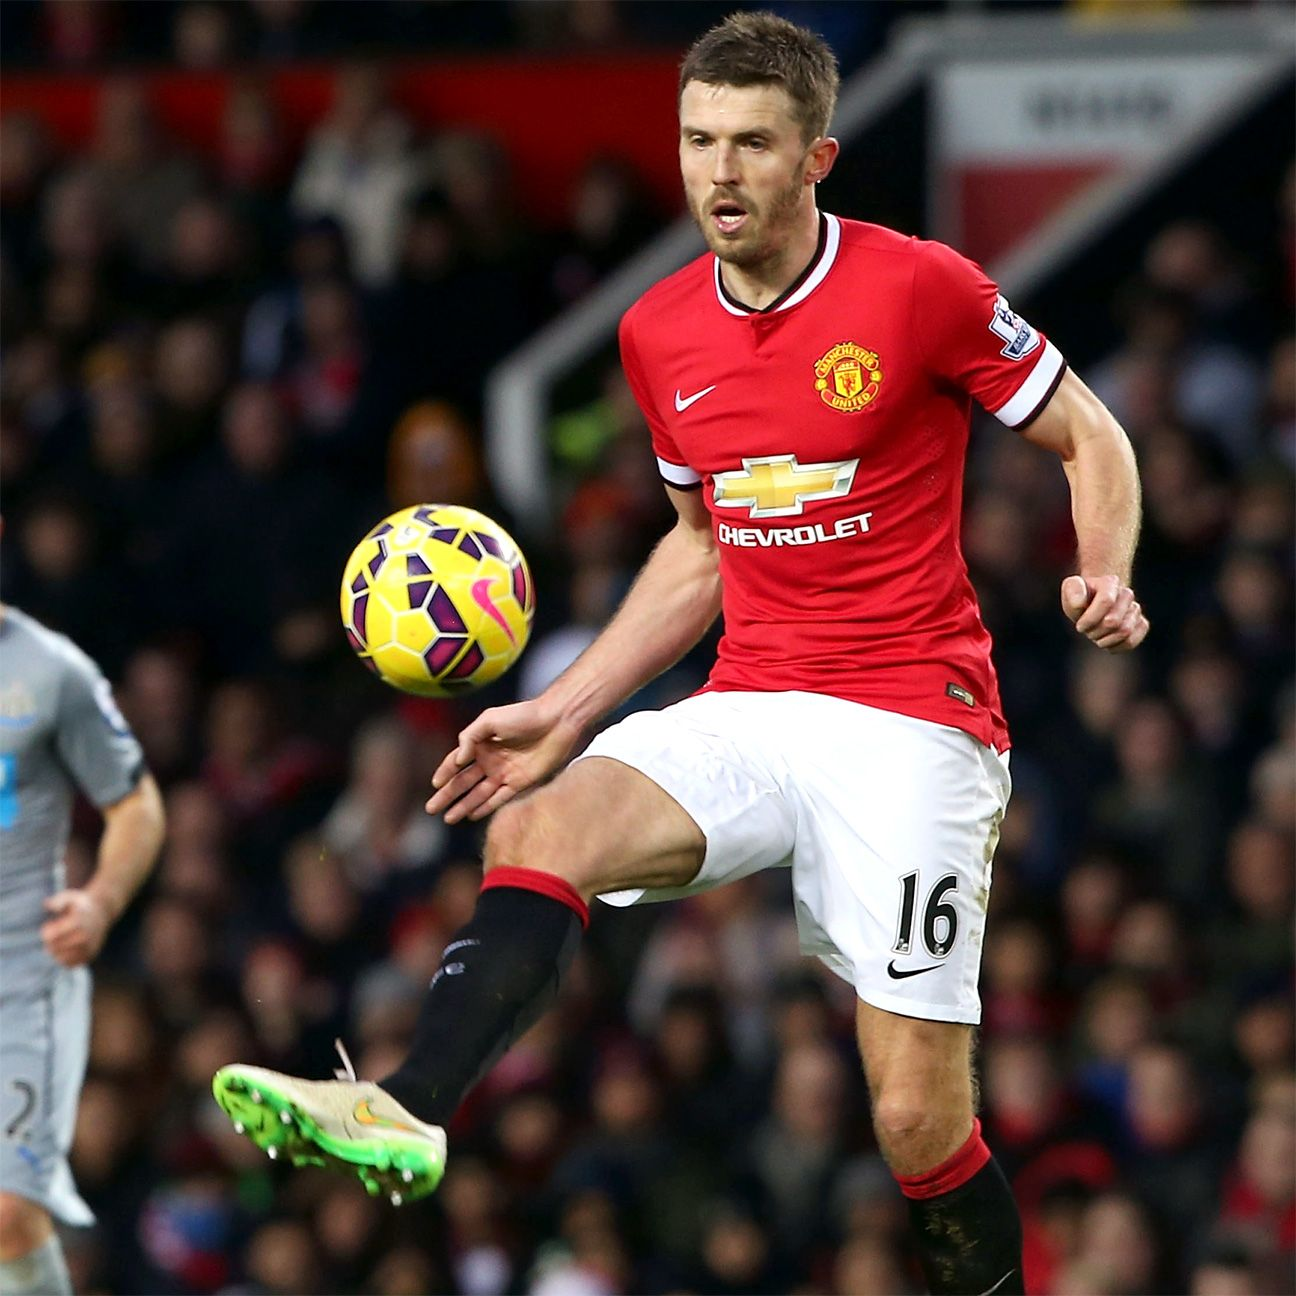 Manchester United have yet to lose a match this season in which Michael Carrick has started.